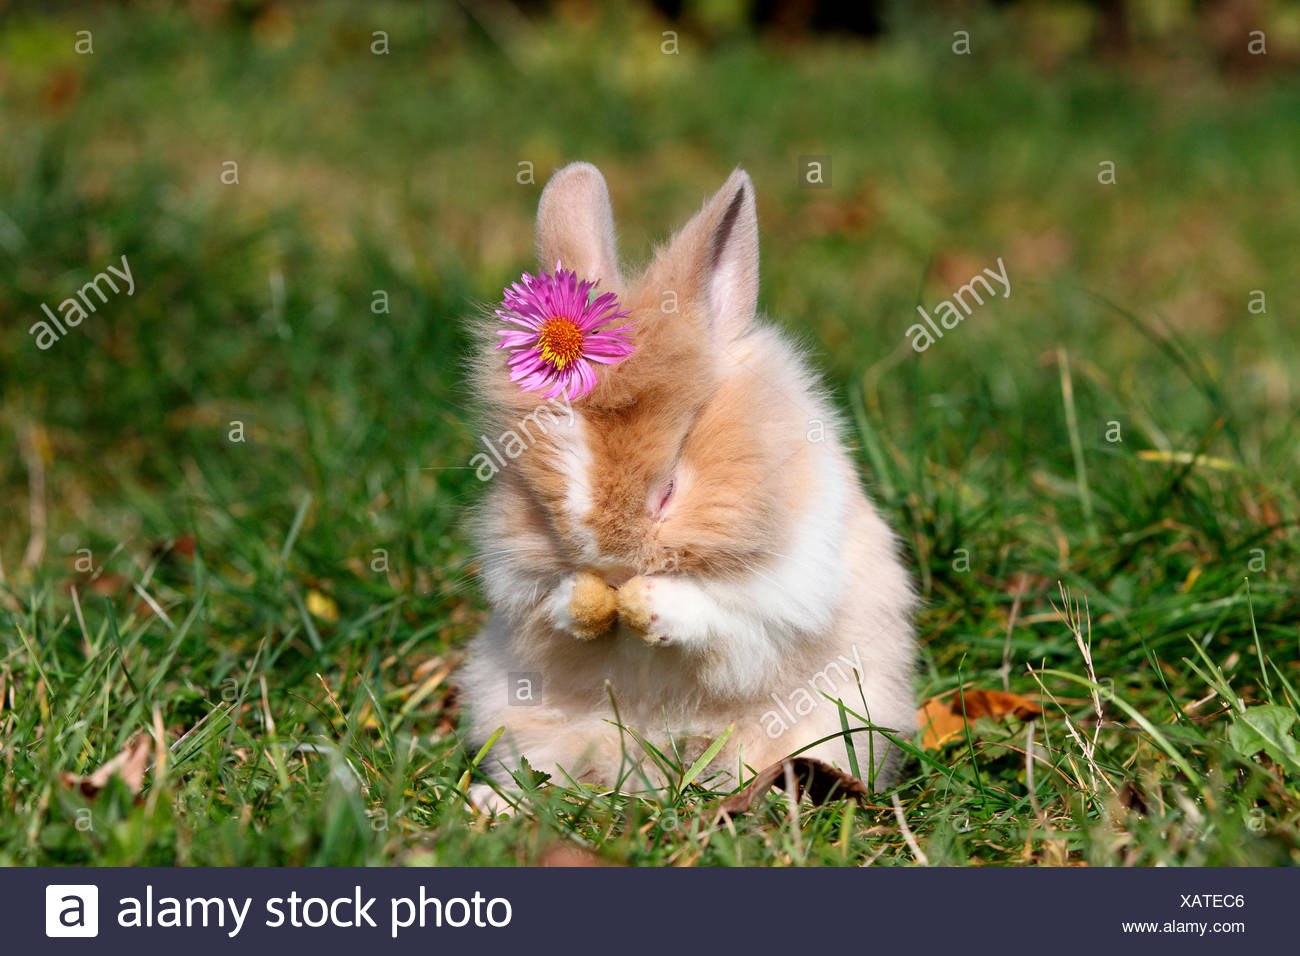 Lion-headed Dwarf rabbit. Young sitting on a meadow, grooming while wearing a pink flower on its head. Germany Stock Photo